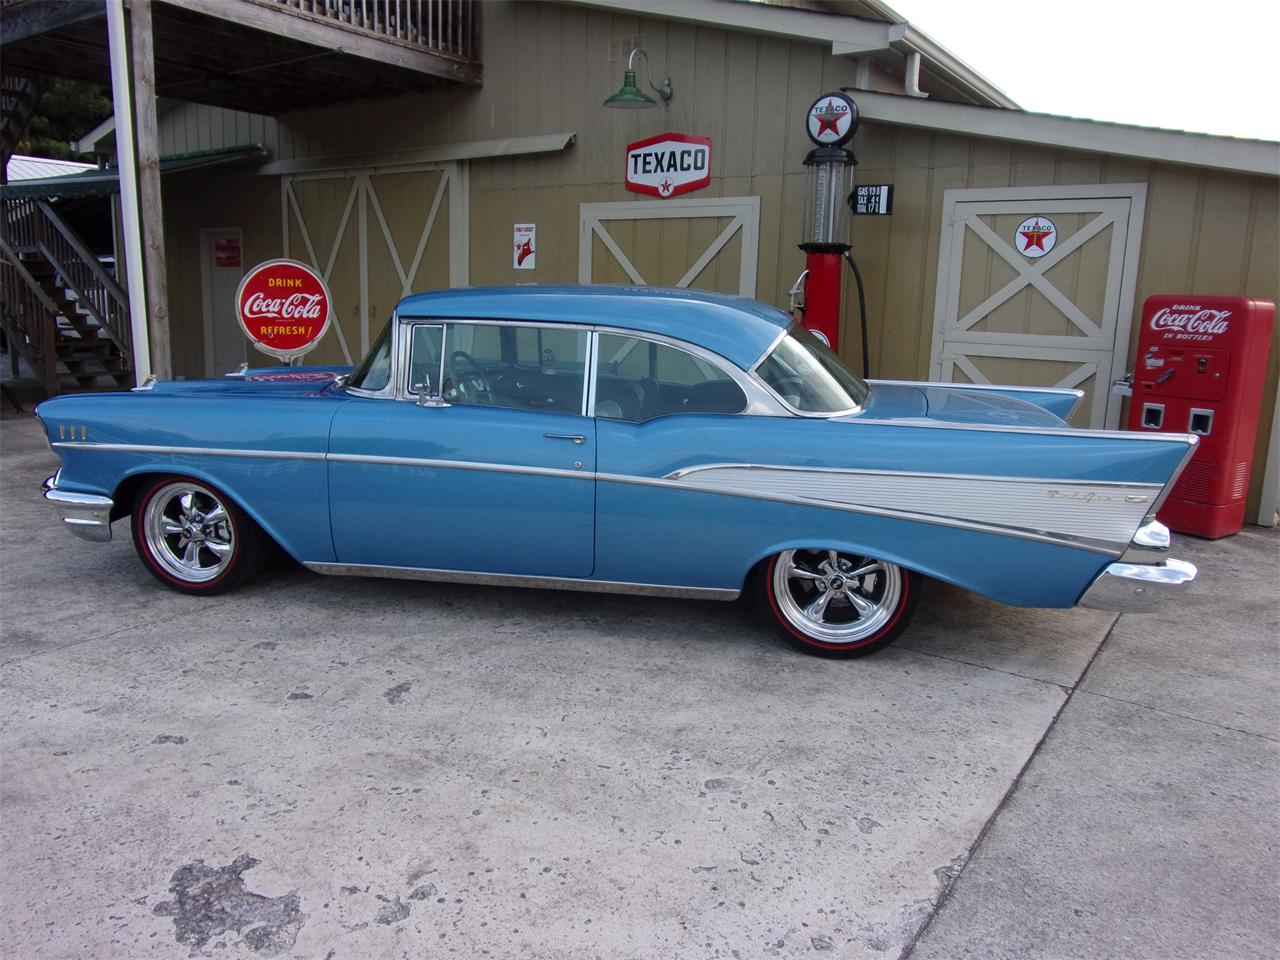 1957 Chevrolet Bel Air (CC-1240120) for sale in Soddy-Daisy, Tennessee